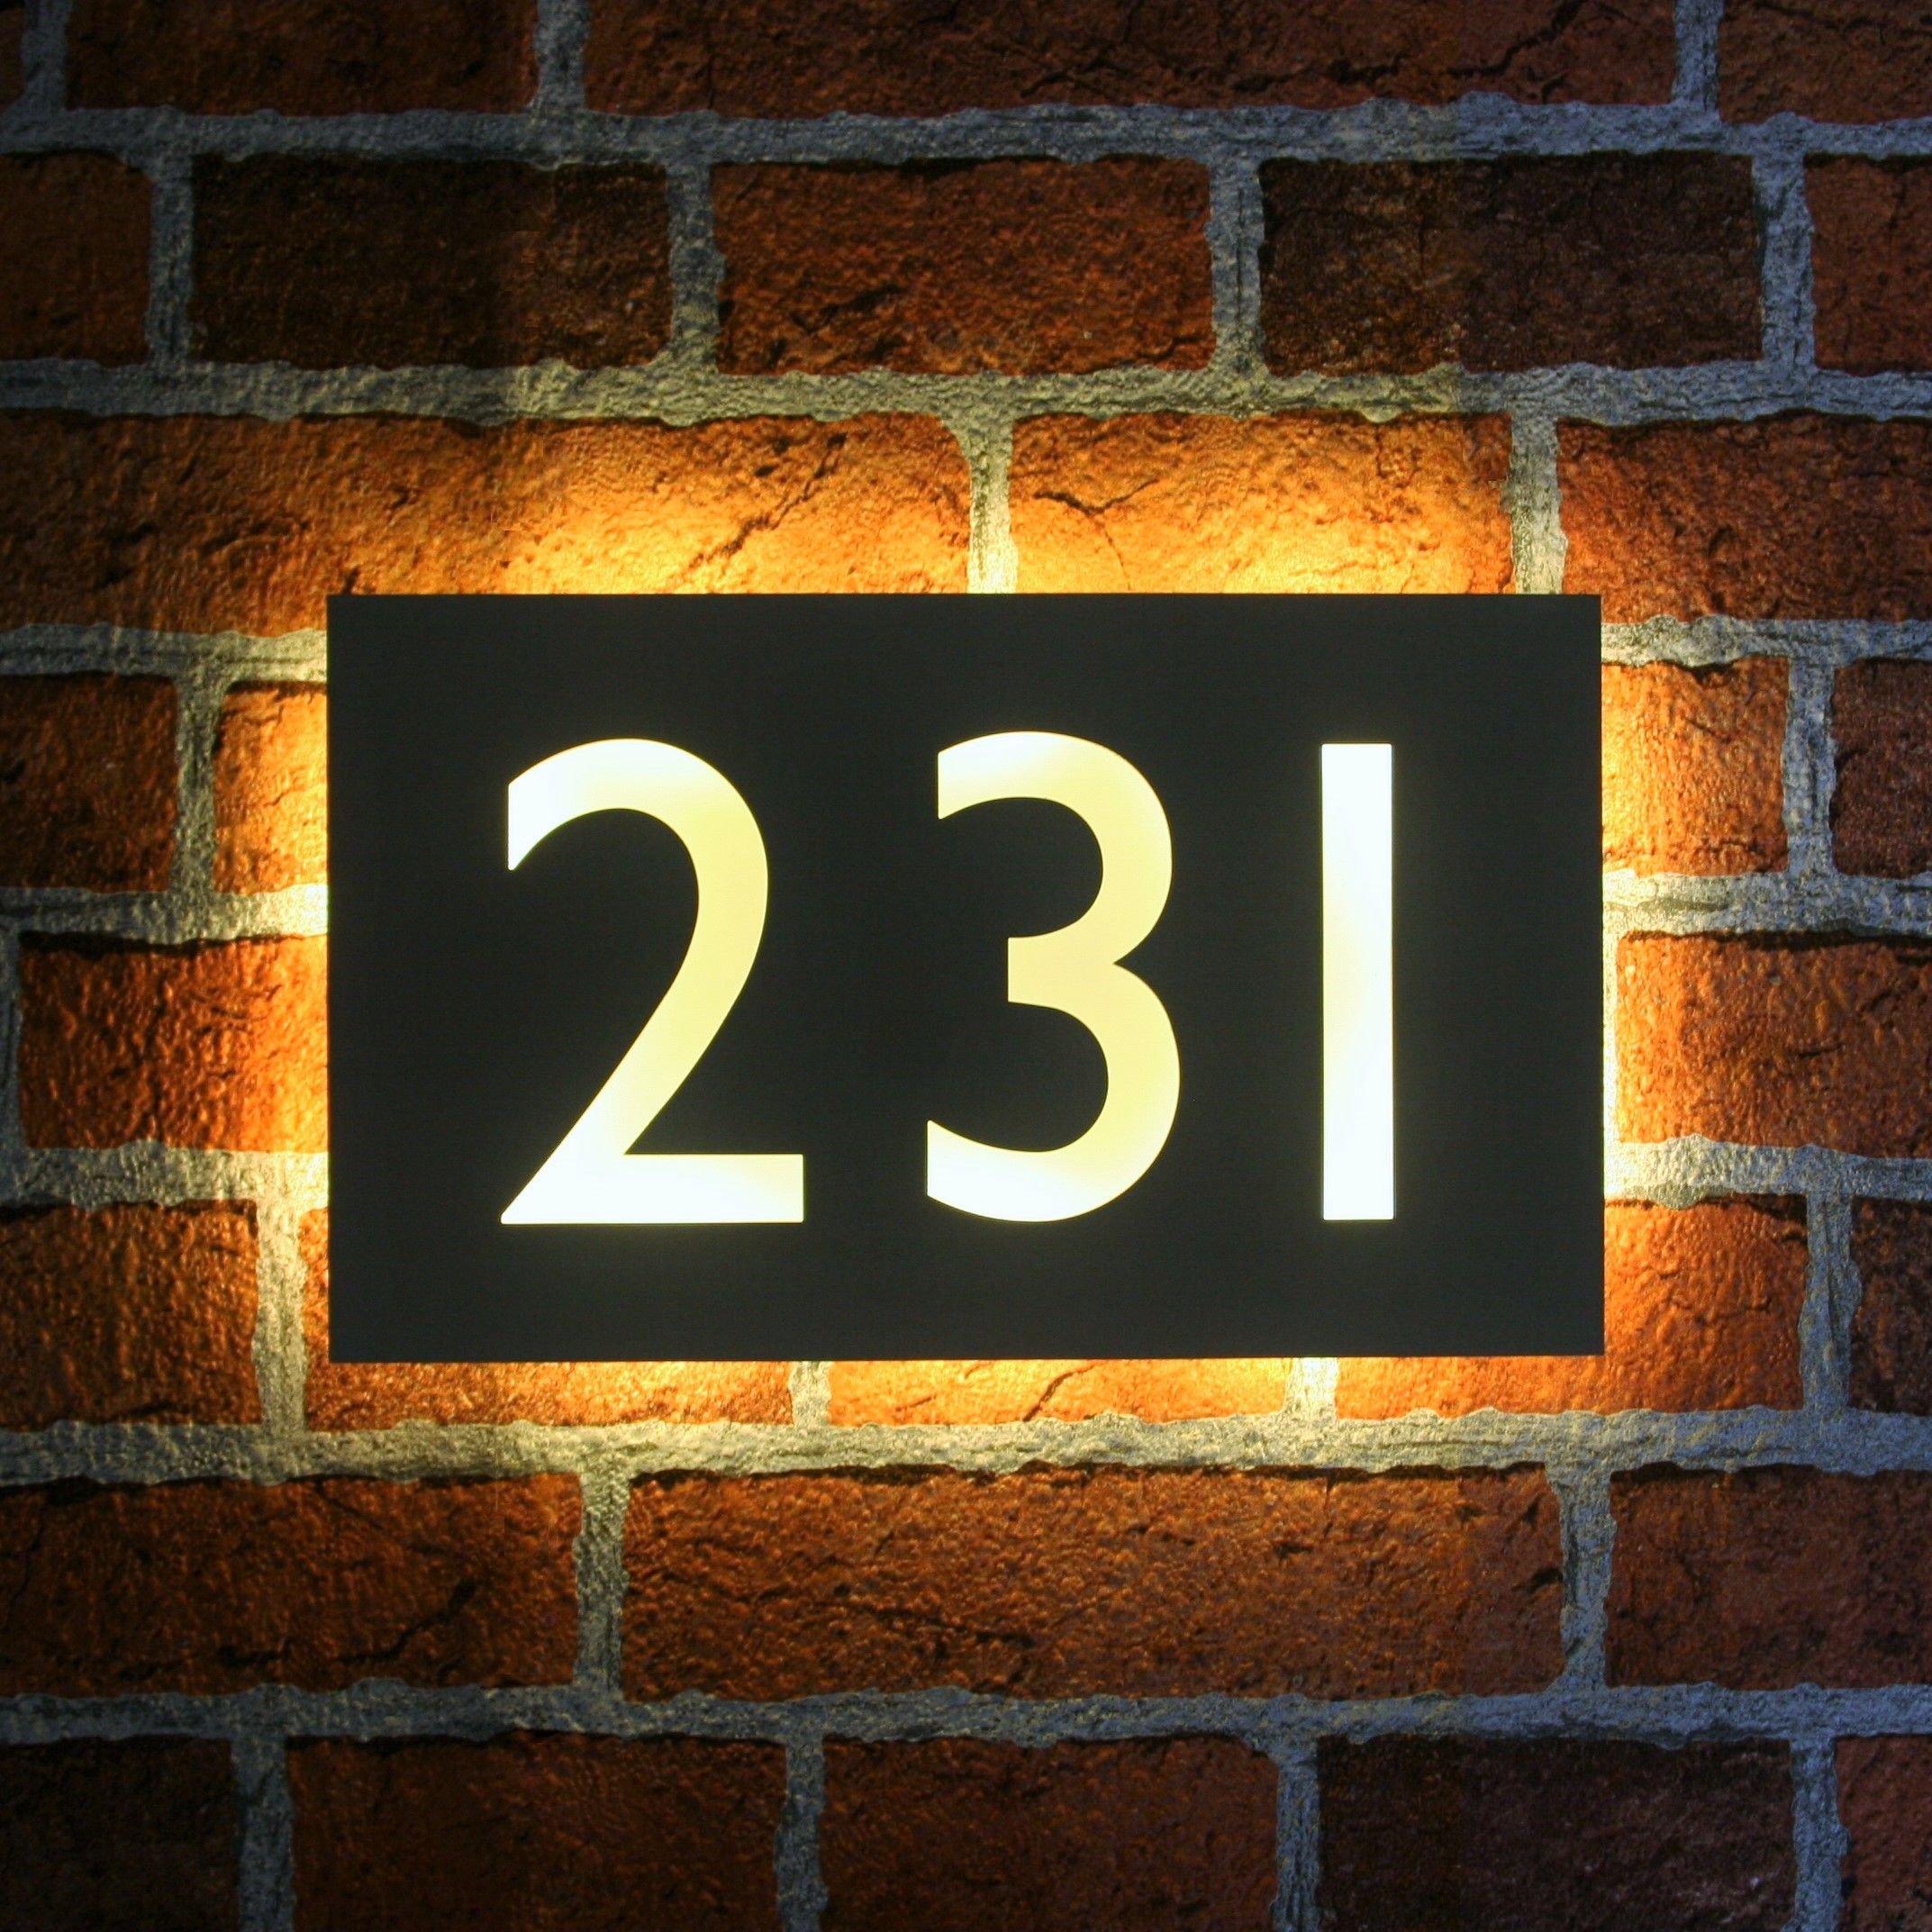 Made to order stainless steel house number